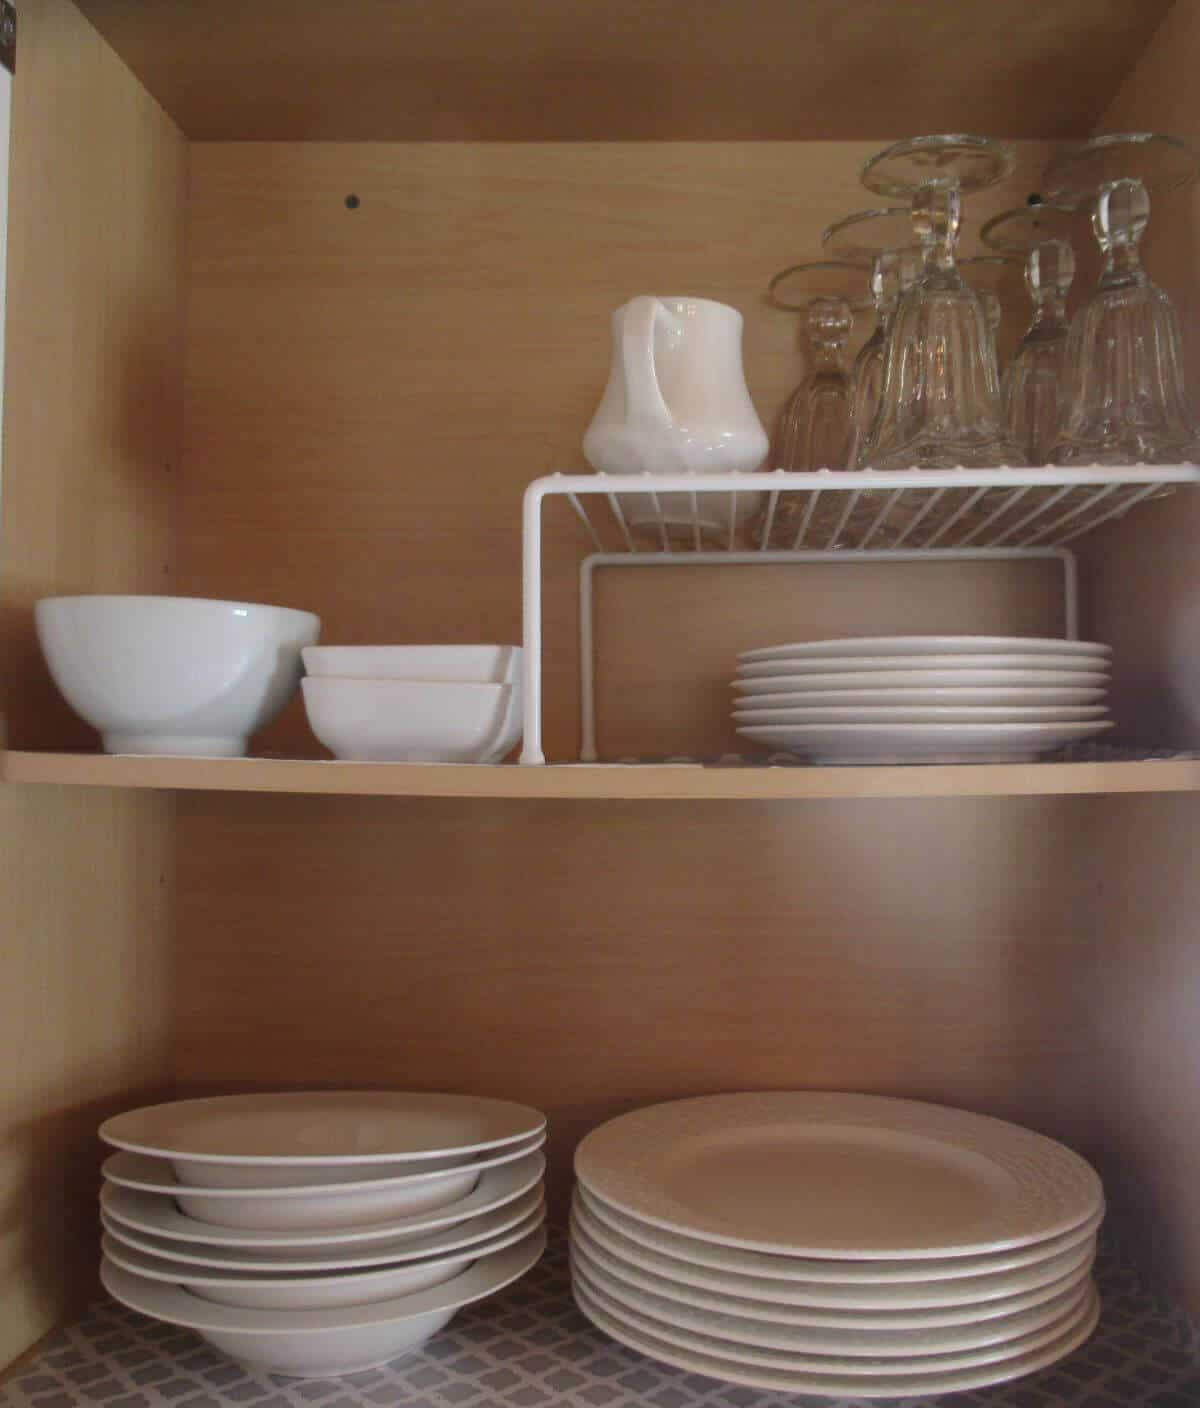 Plain white dishes in tidy cabinet